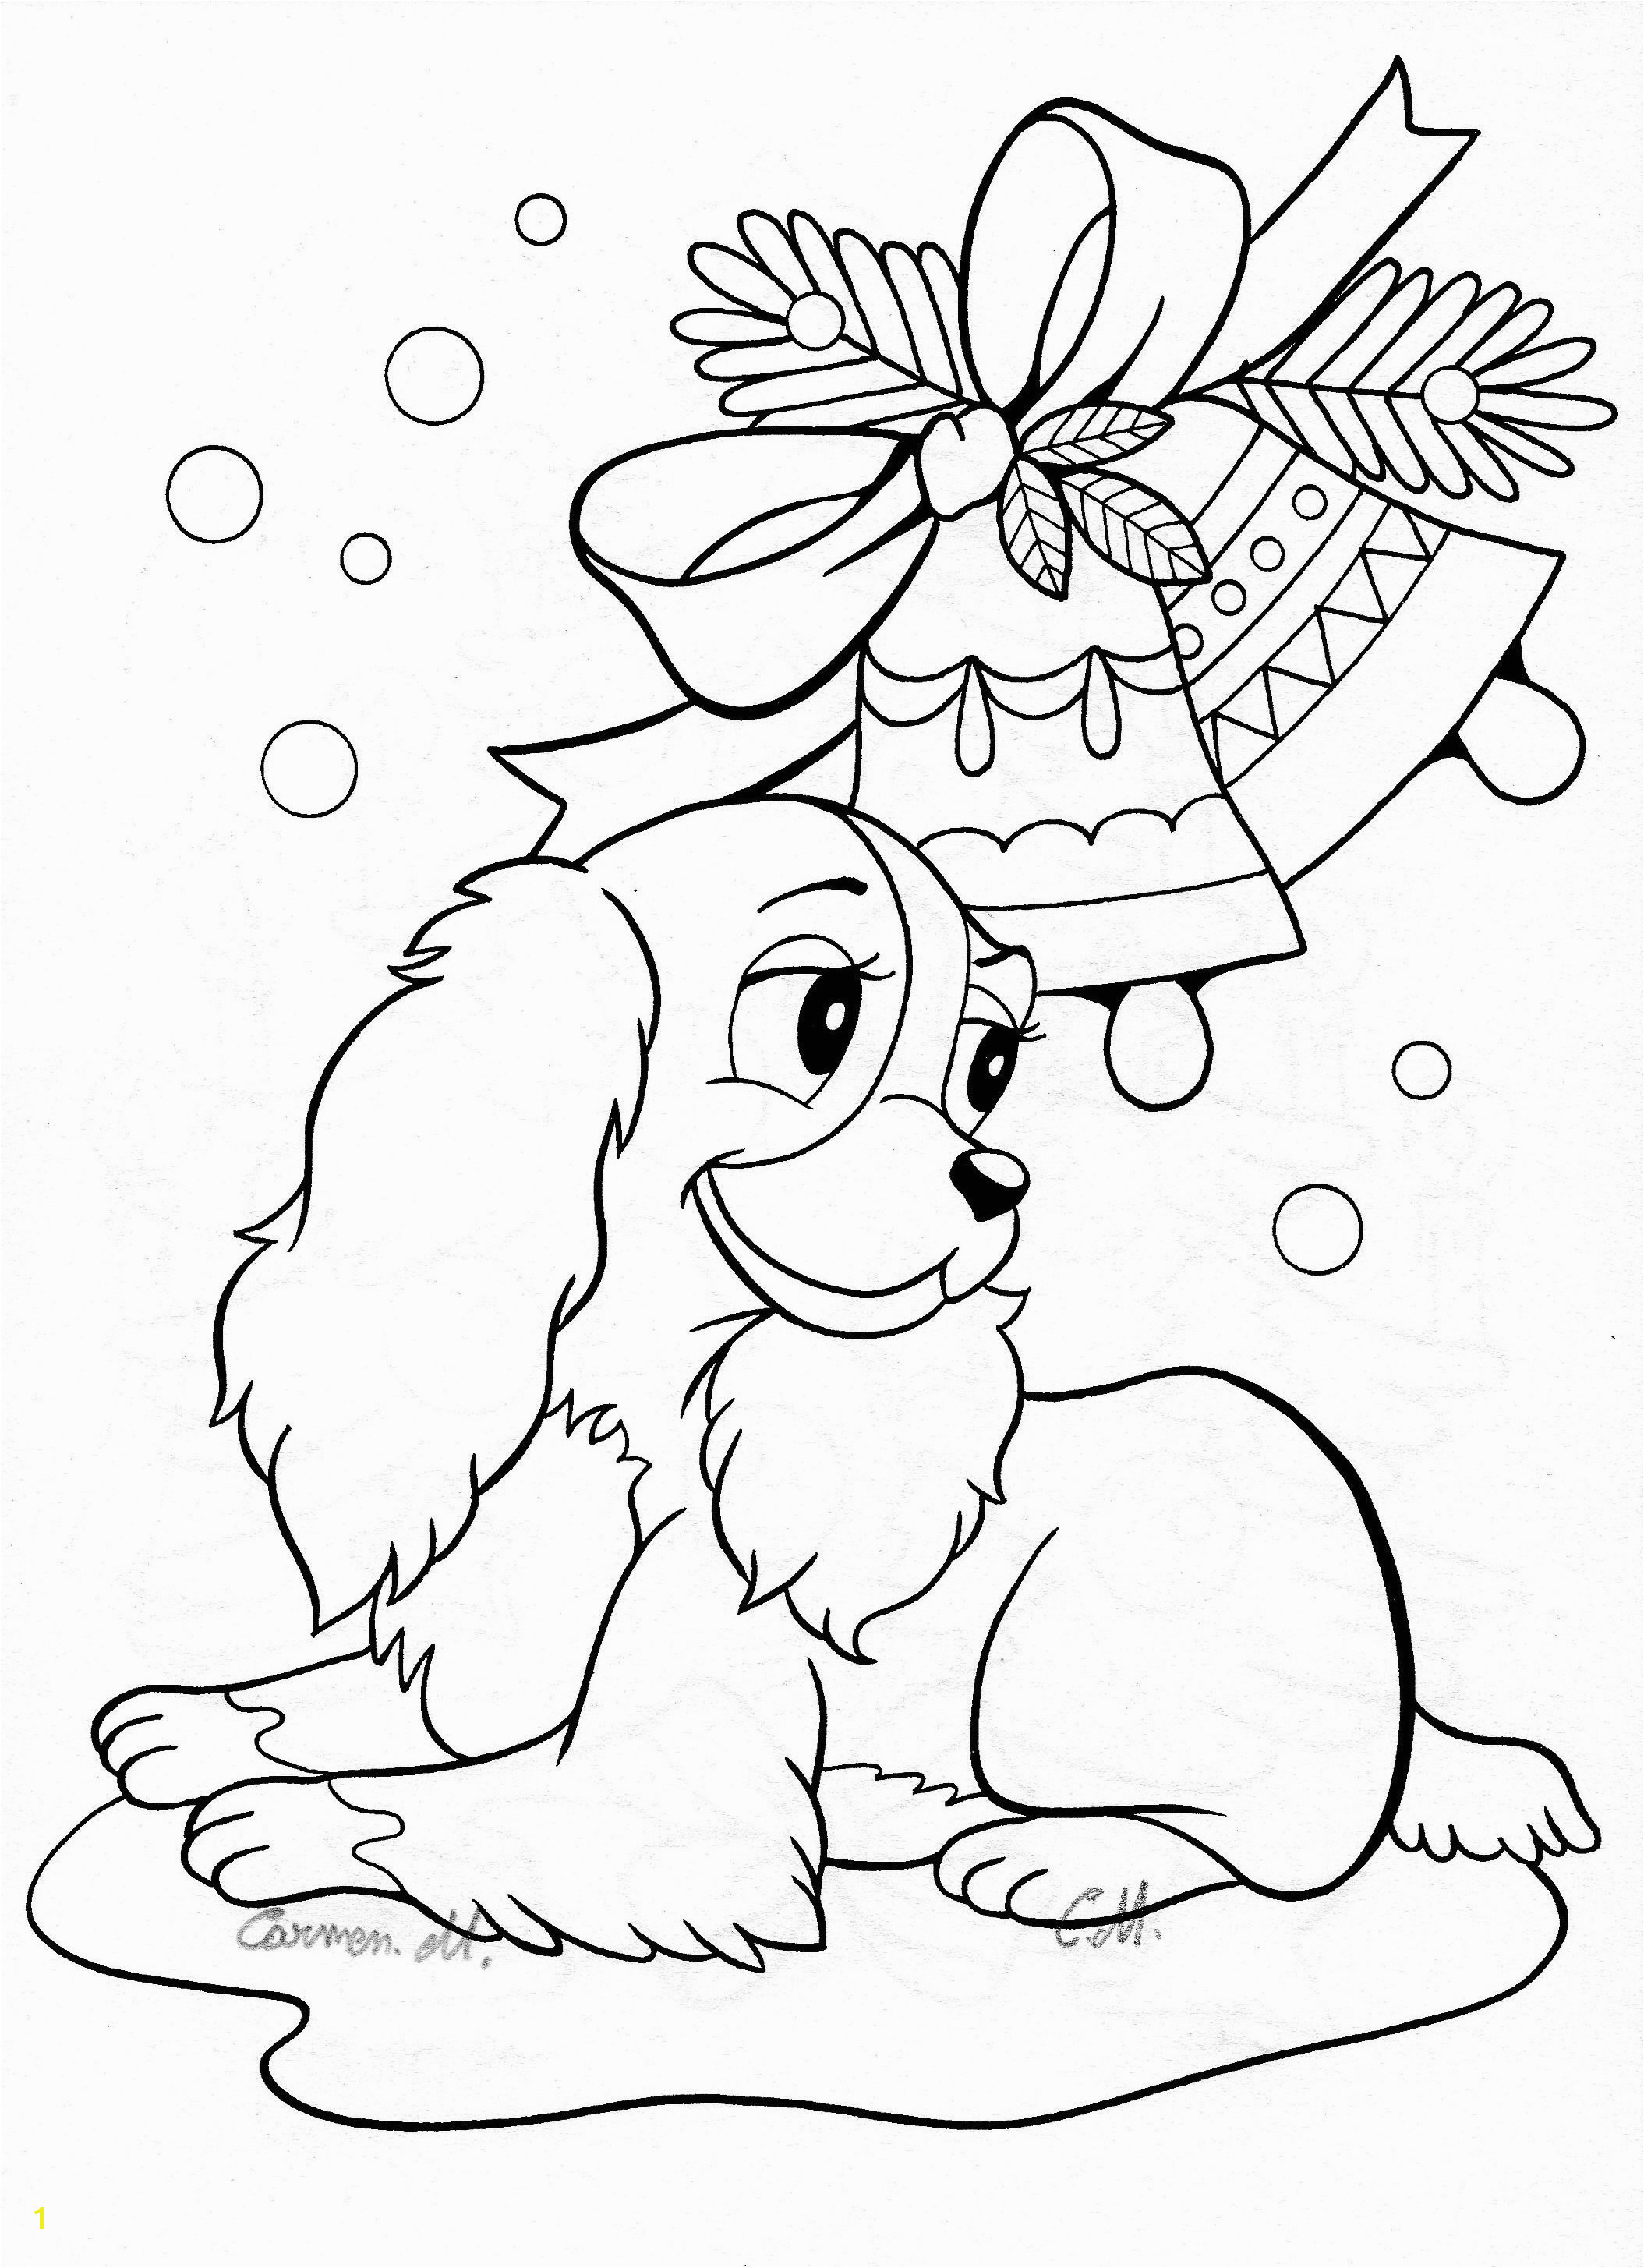 Cat Coloring Pages Free Printable New Best Od Dog Free Holiday